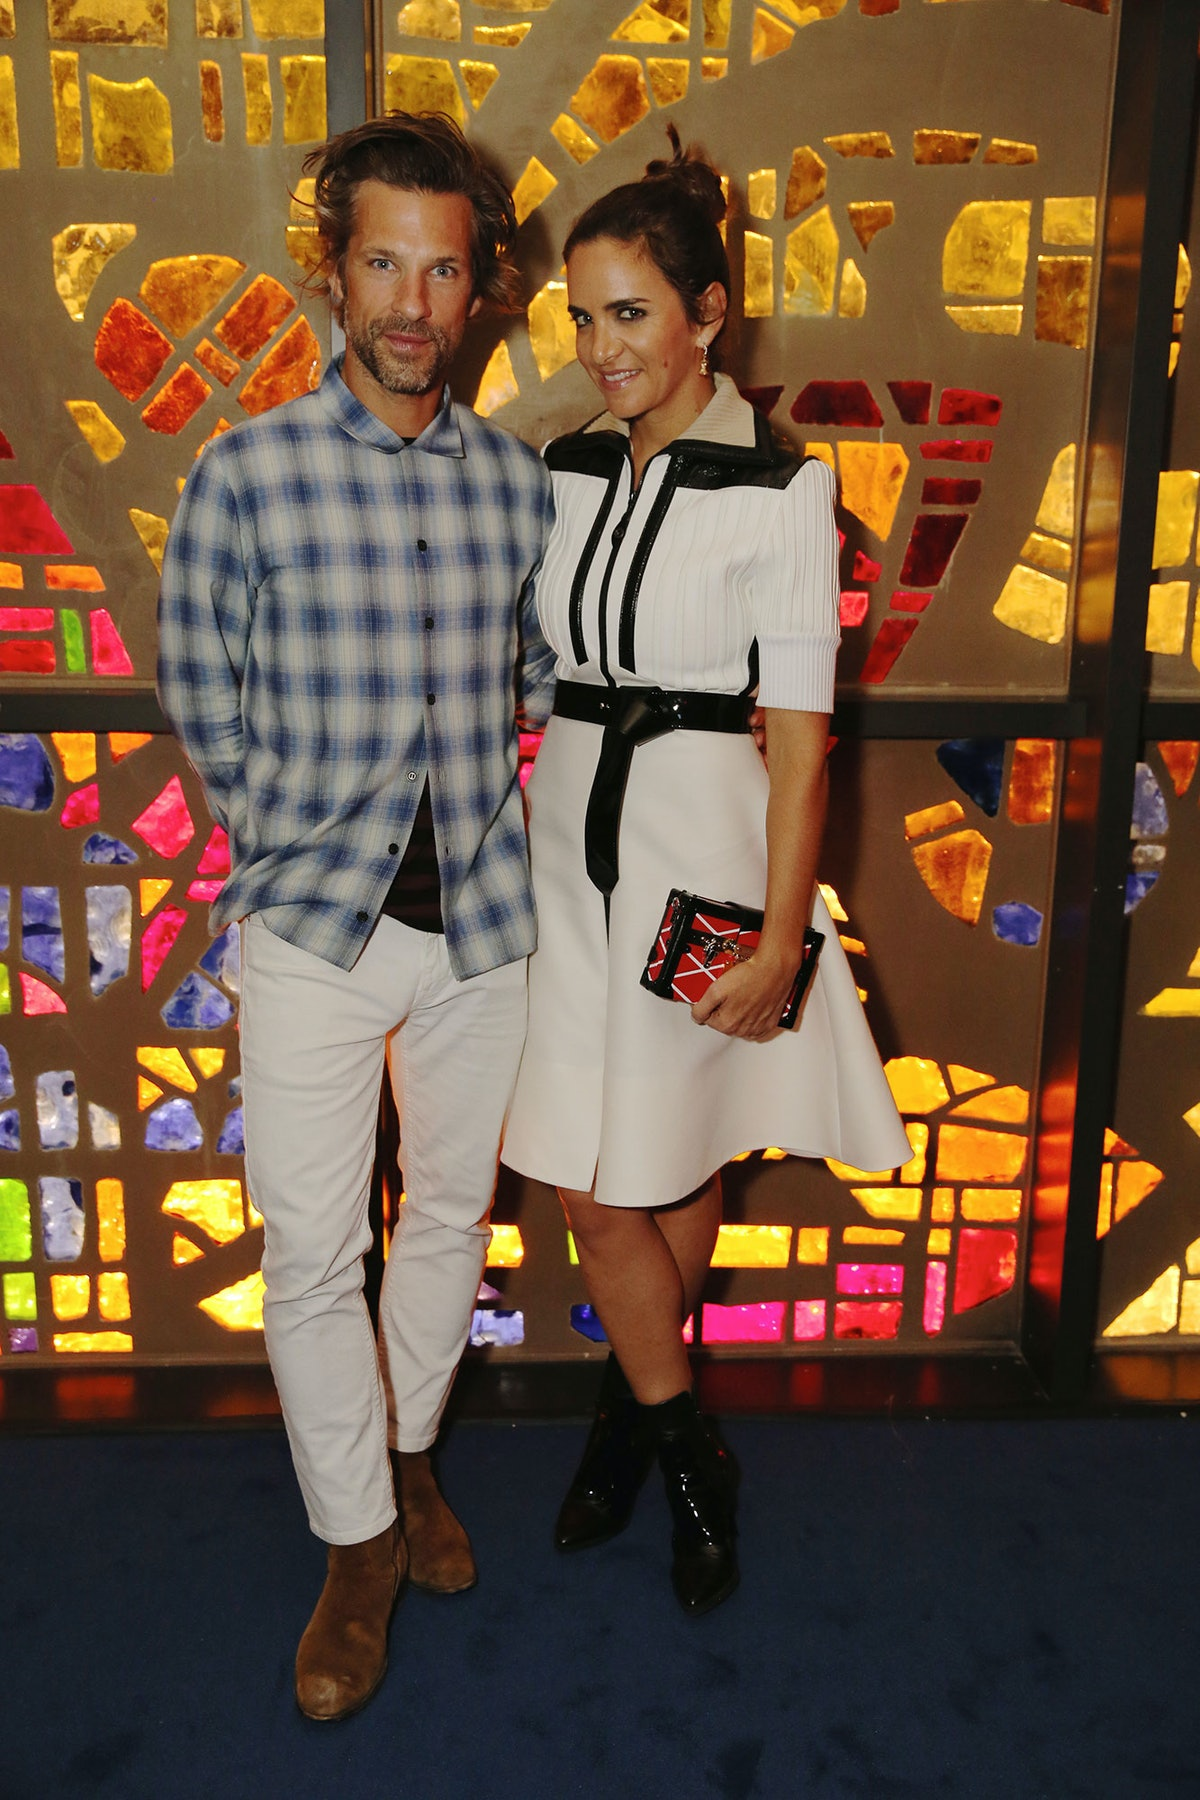 Aaron Young and Laure Heriard Dubreuil at Louis Vuitton's celebration of Pierre Paulin's Playing wit...